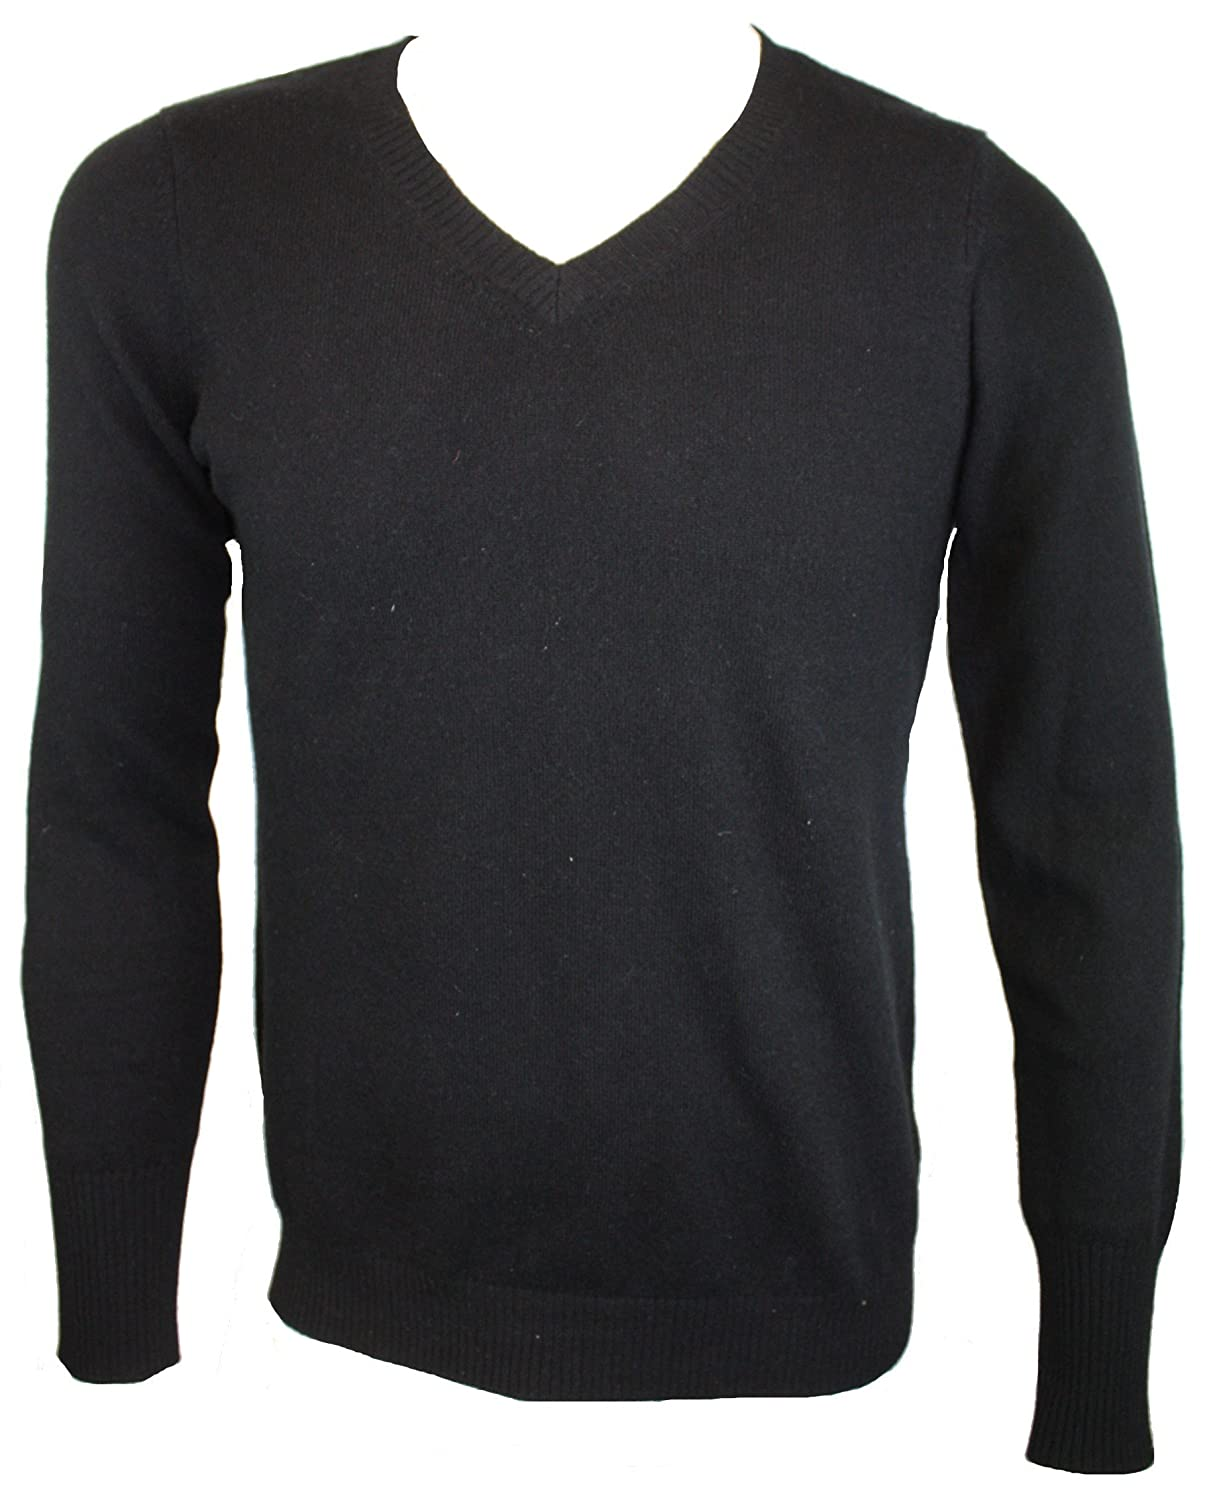 Discount Enzo Mantovani Long Sleeve V-Nack 100% Cashmere Sweater supplier